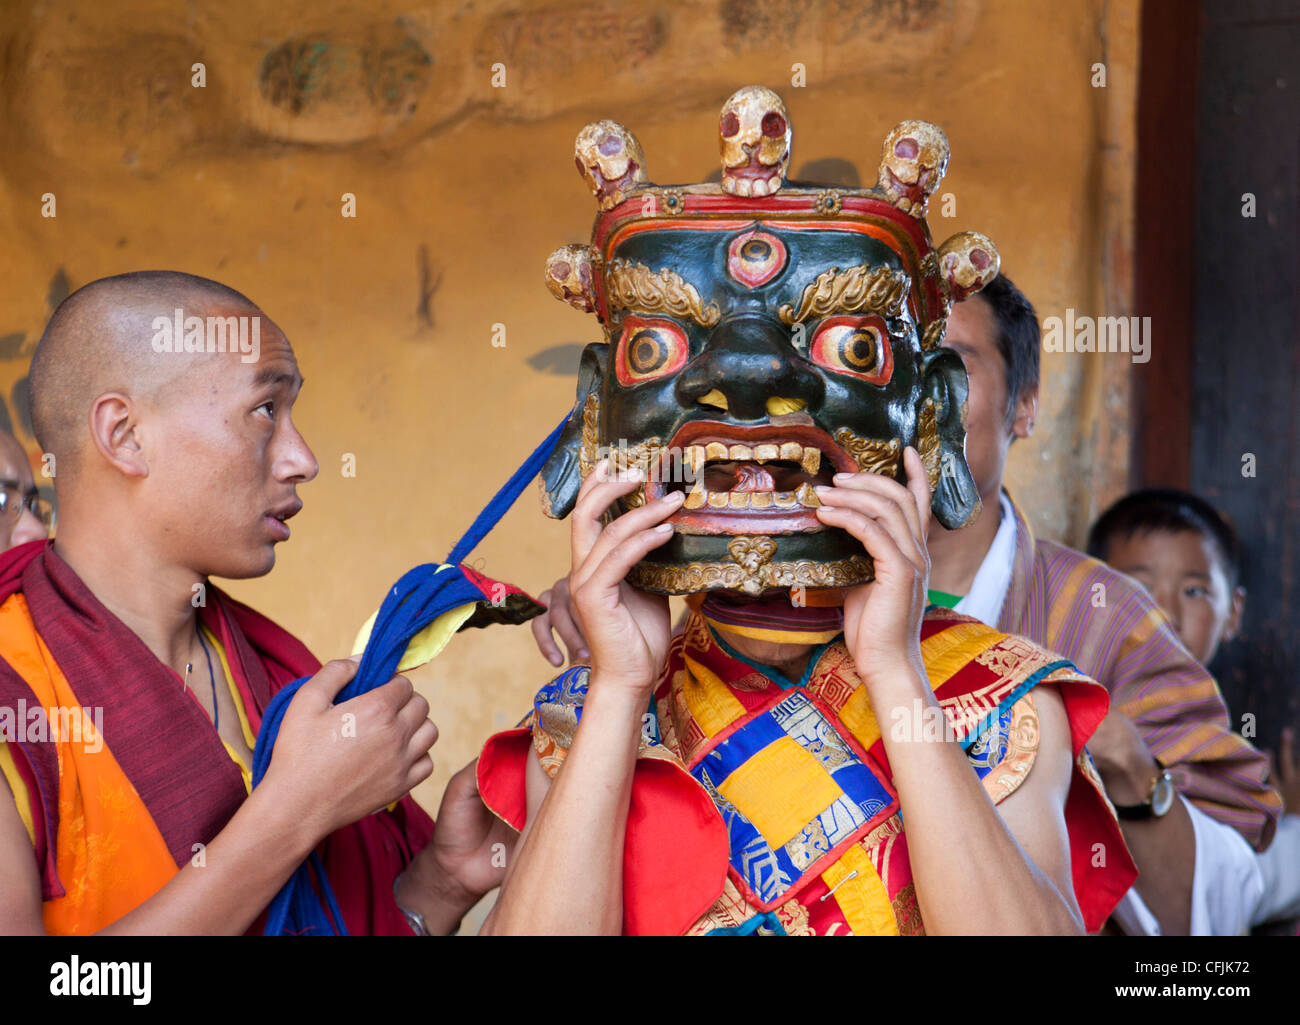 Buddhist monk being helped to secure his carved wooden mask, Jakar, Bumthang, Bhutan, Asia - Stock Image